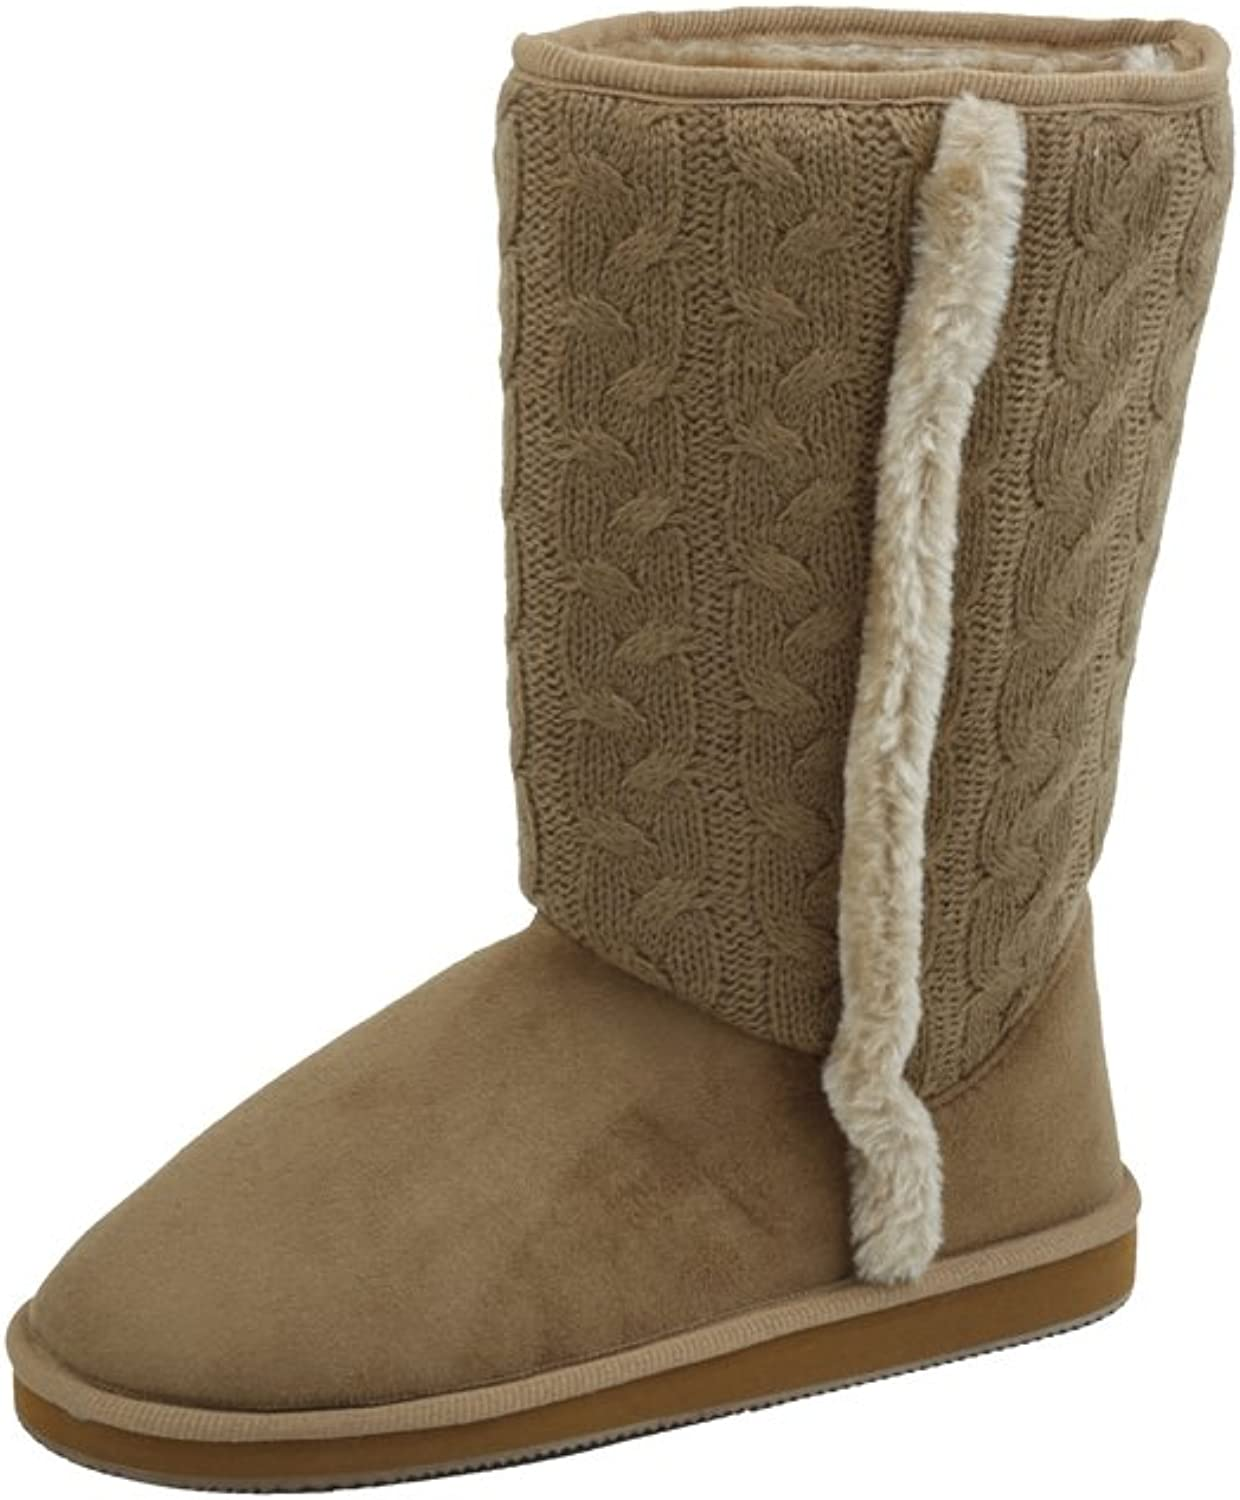 Sunville New Women's Knitted Sweater Design Faux Suede Boots